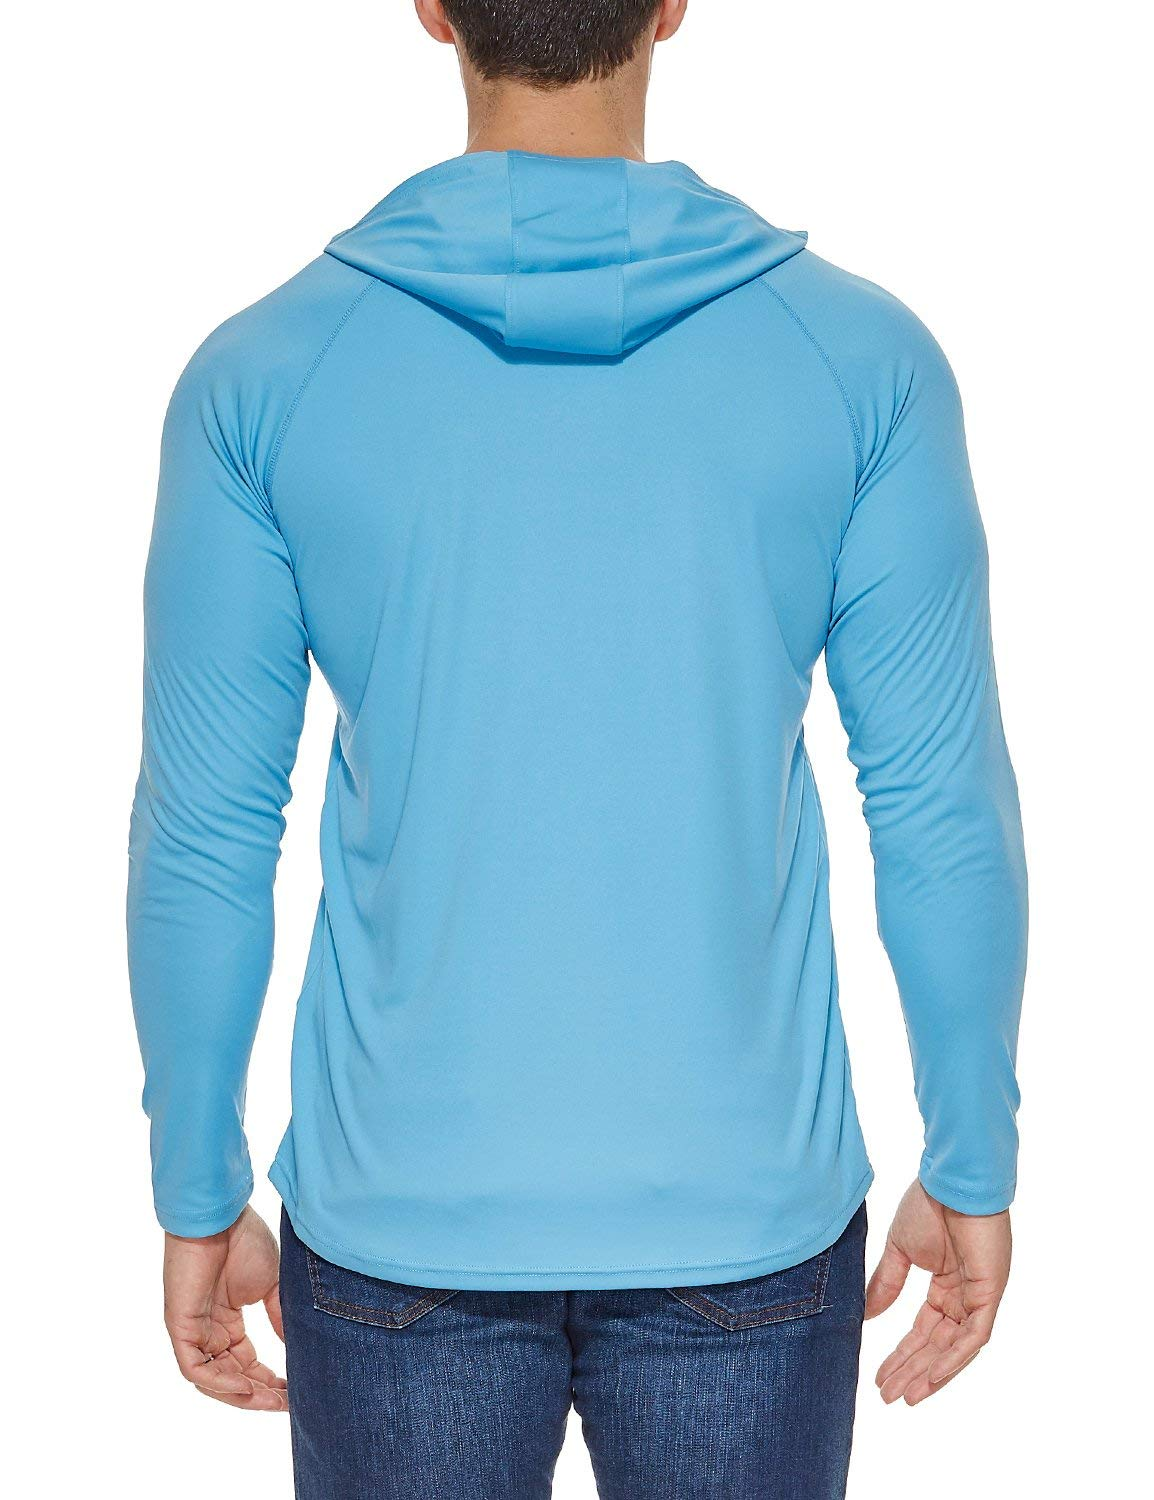 Sun Protection Hoodie Long Sleeve Performance T-Shirt BALEAF Mens UPF 50